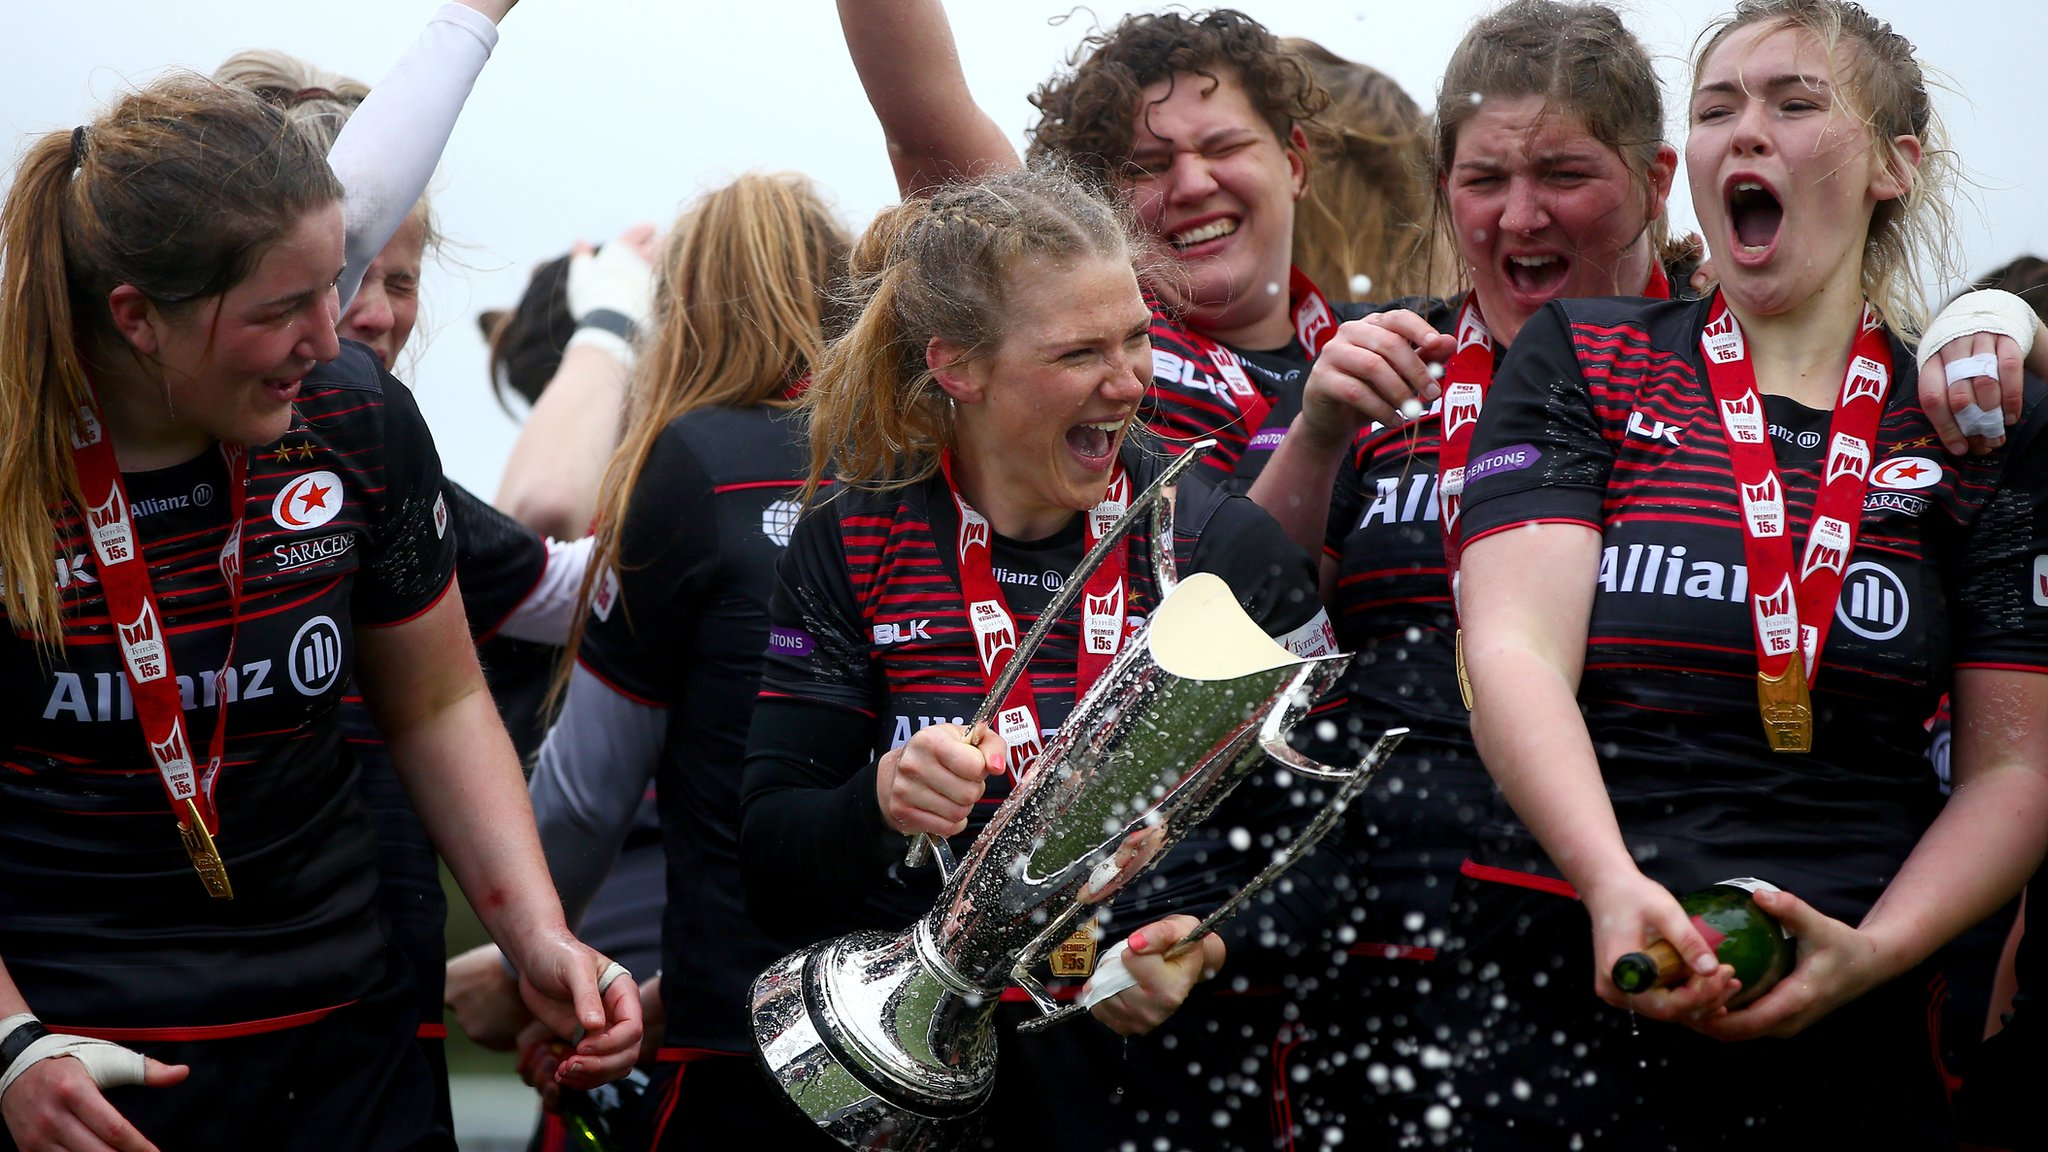 Premier 15s: Champions Saracens are team to beat as 2018-19 season begins